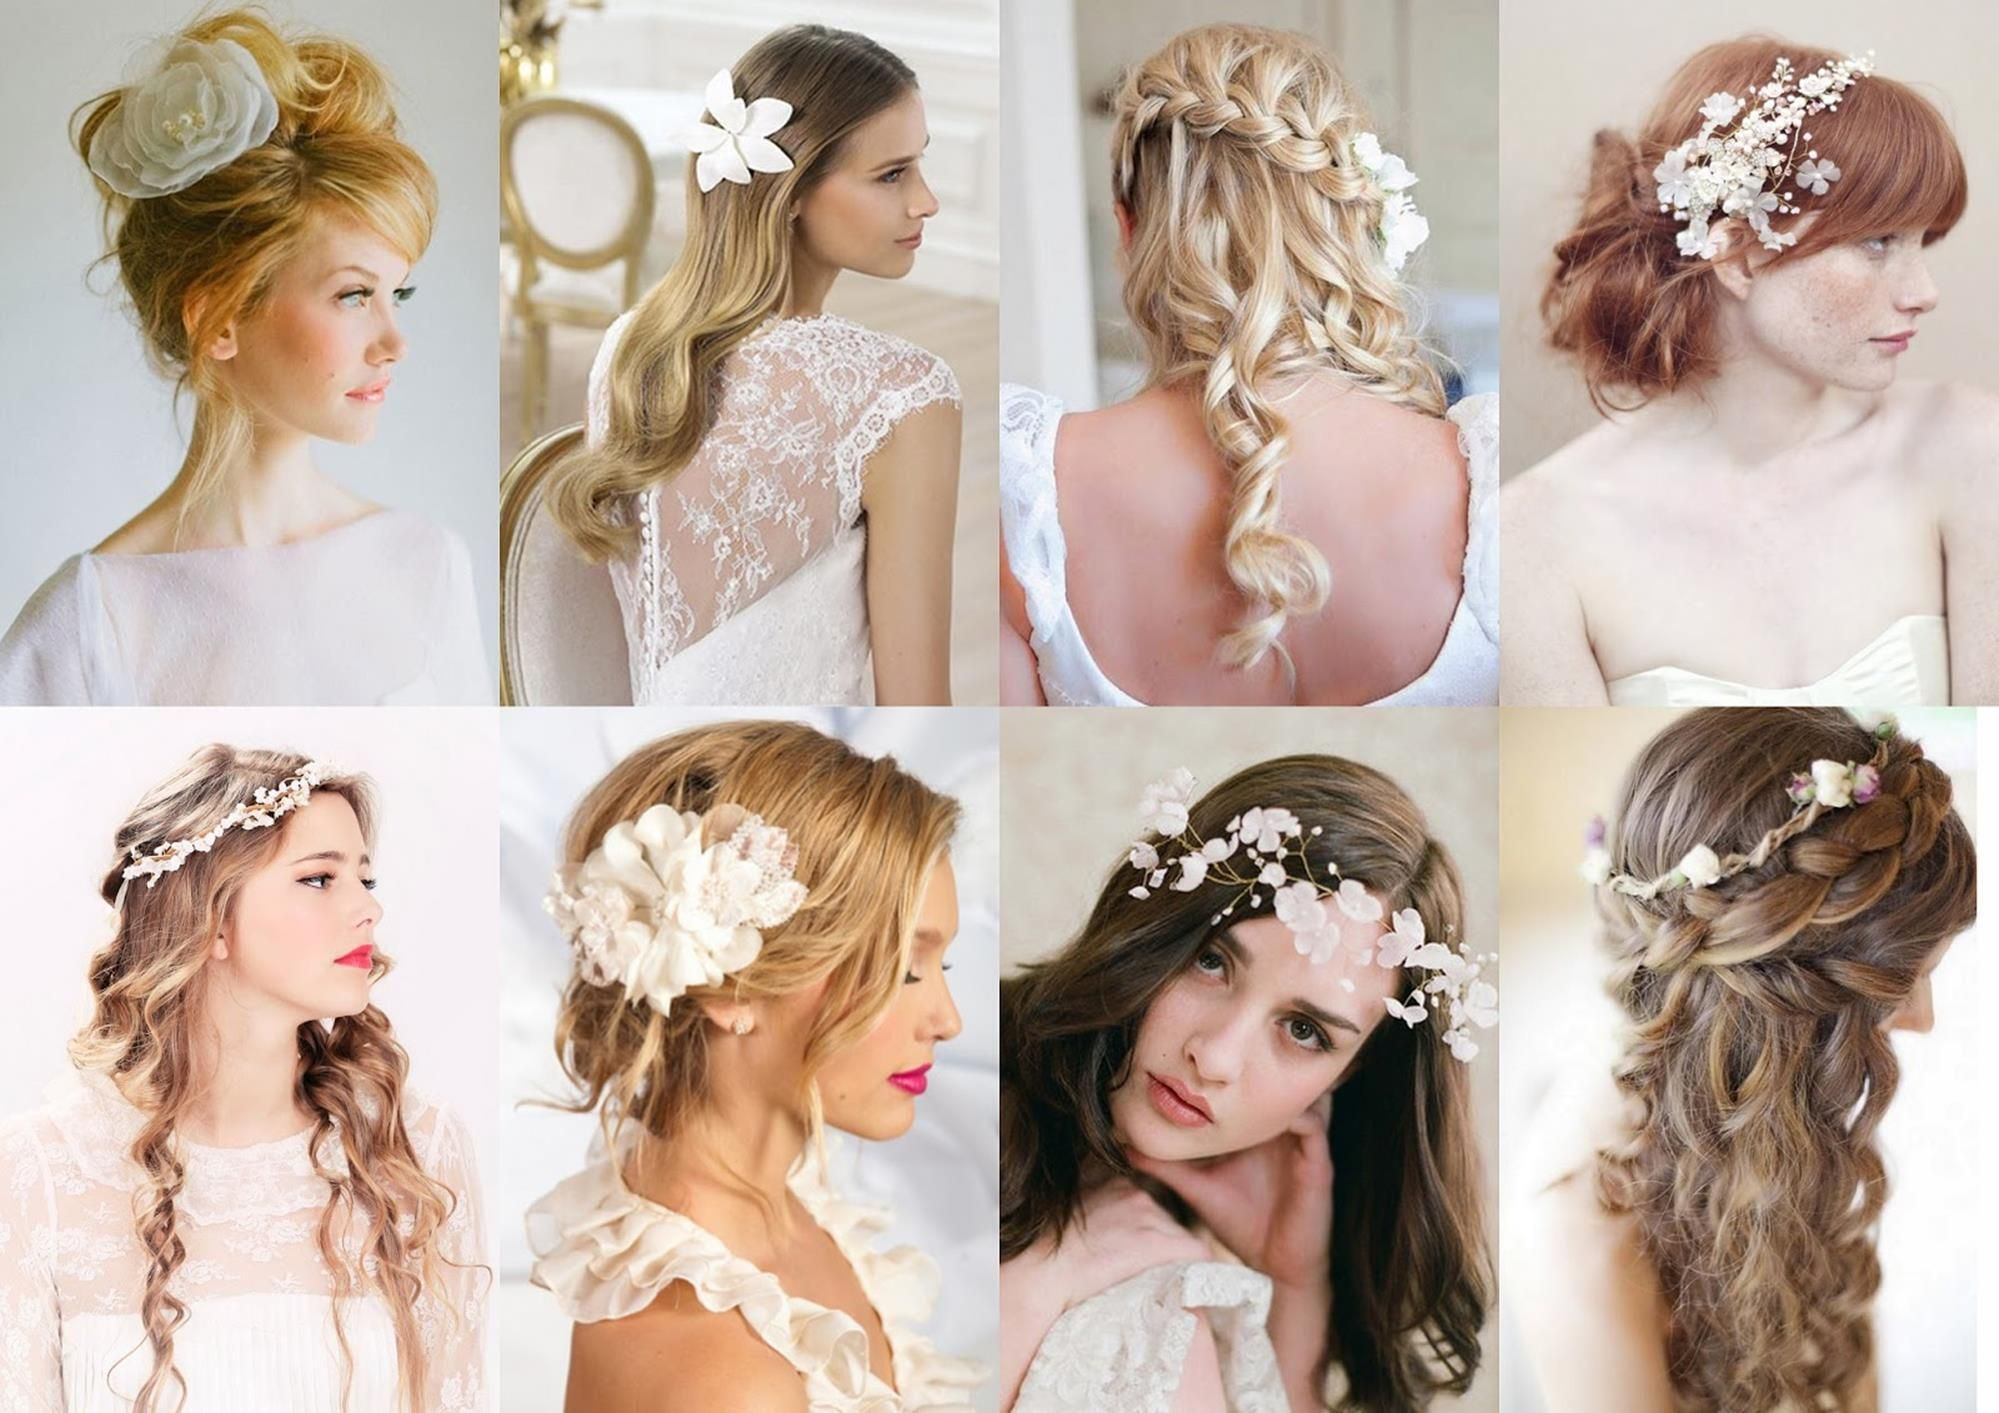 40 Simple But Beautiful Hairstyles For Wedding Guests Weddingraceful Wedding Guest Hairstyles Guest Hair Wedding Hairstyles Updo